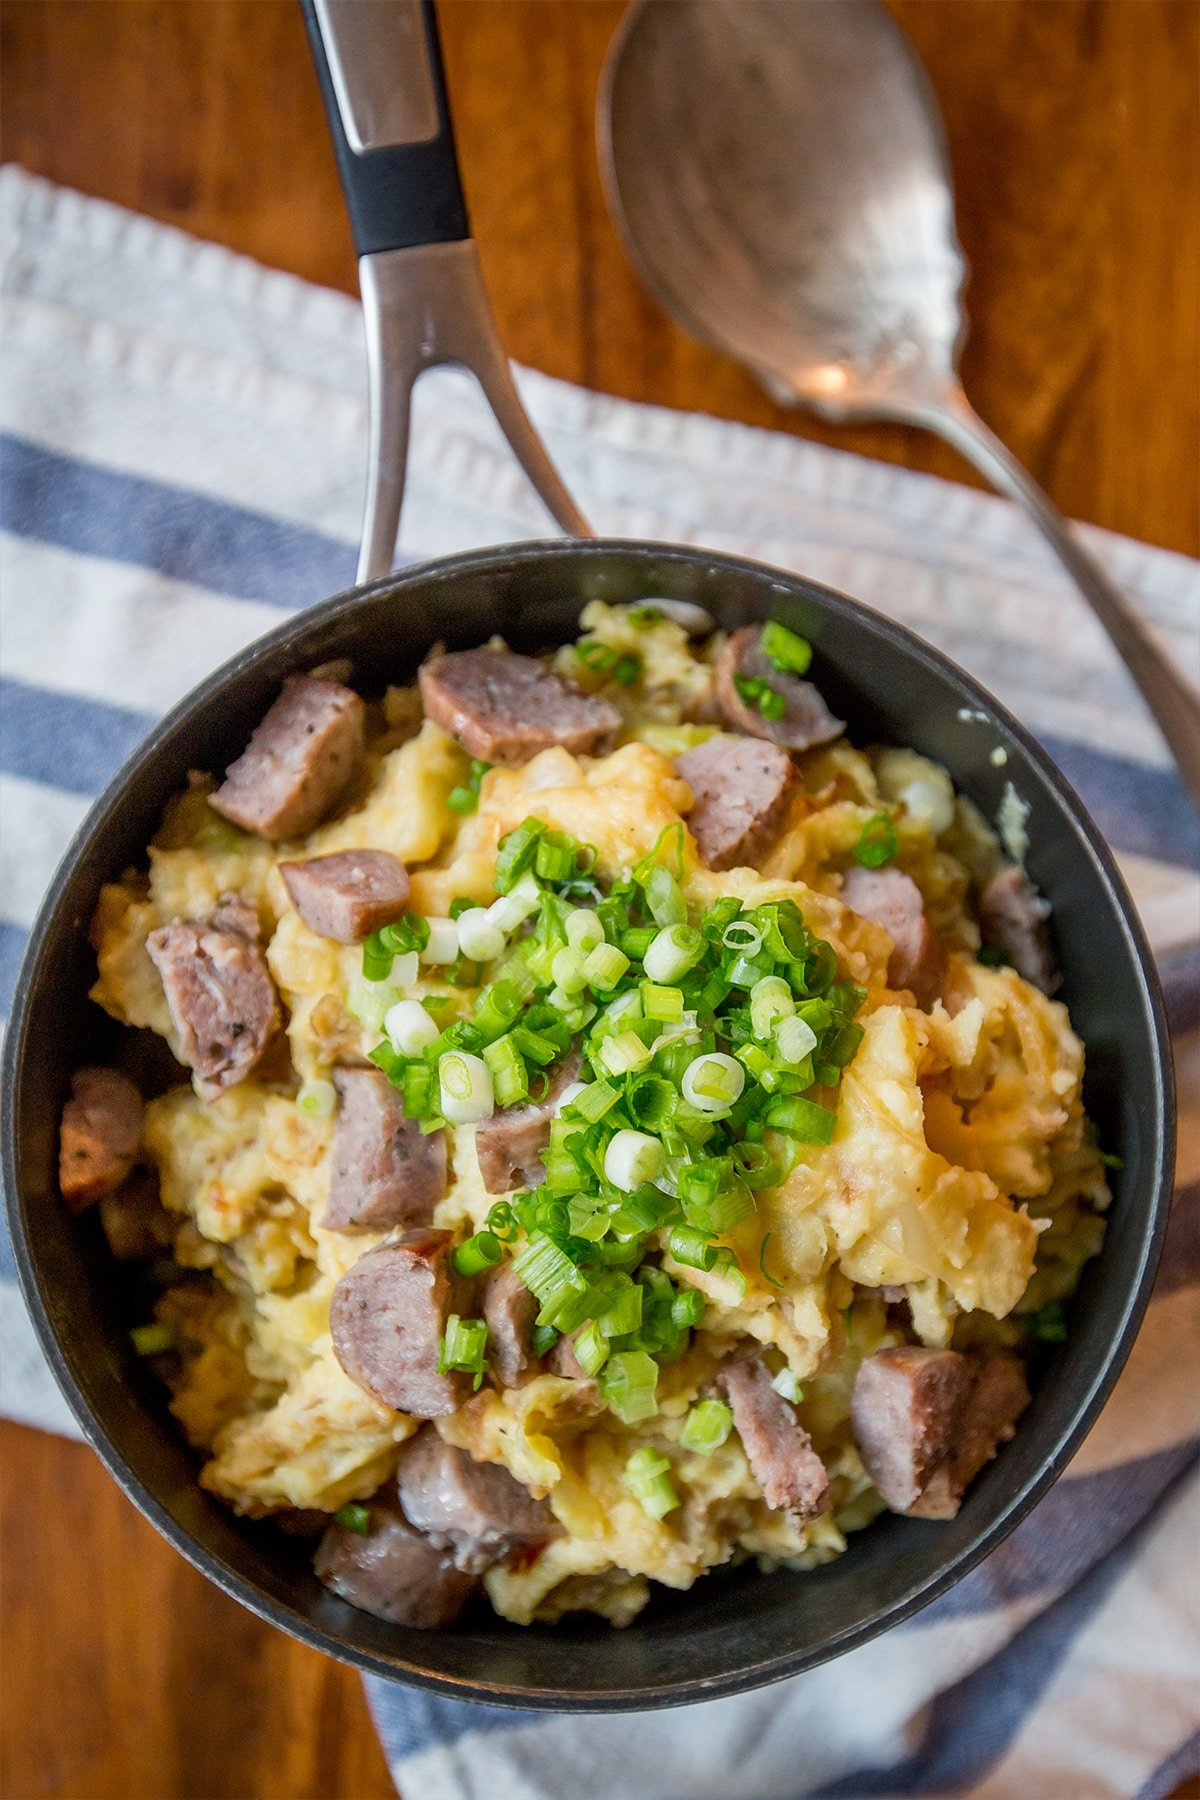 Love this recipe- tons of cheesy, creamy flavor in a delicious take on this irish dish!